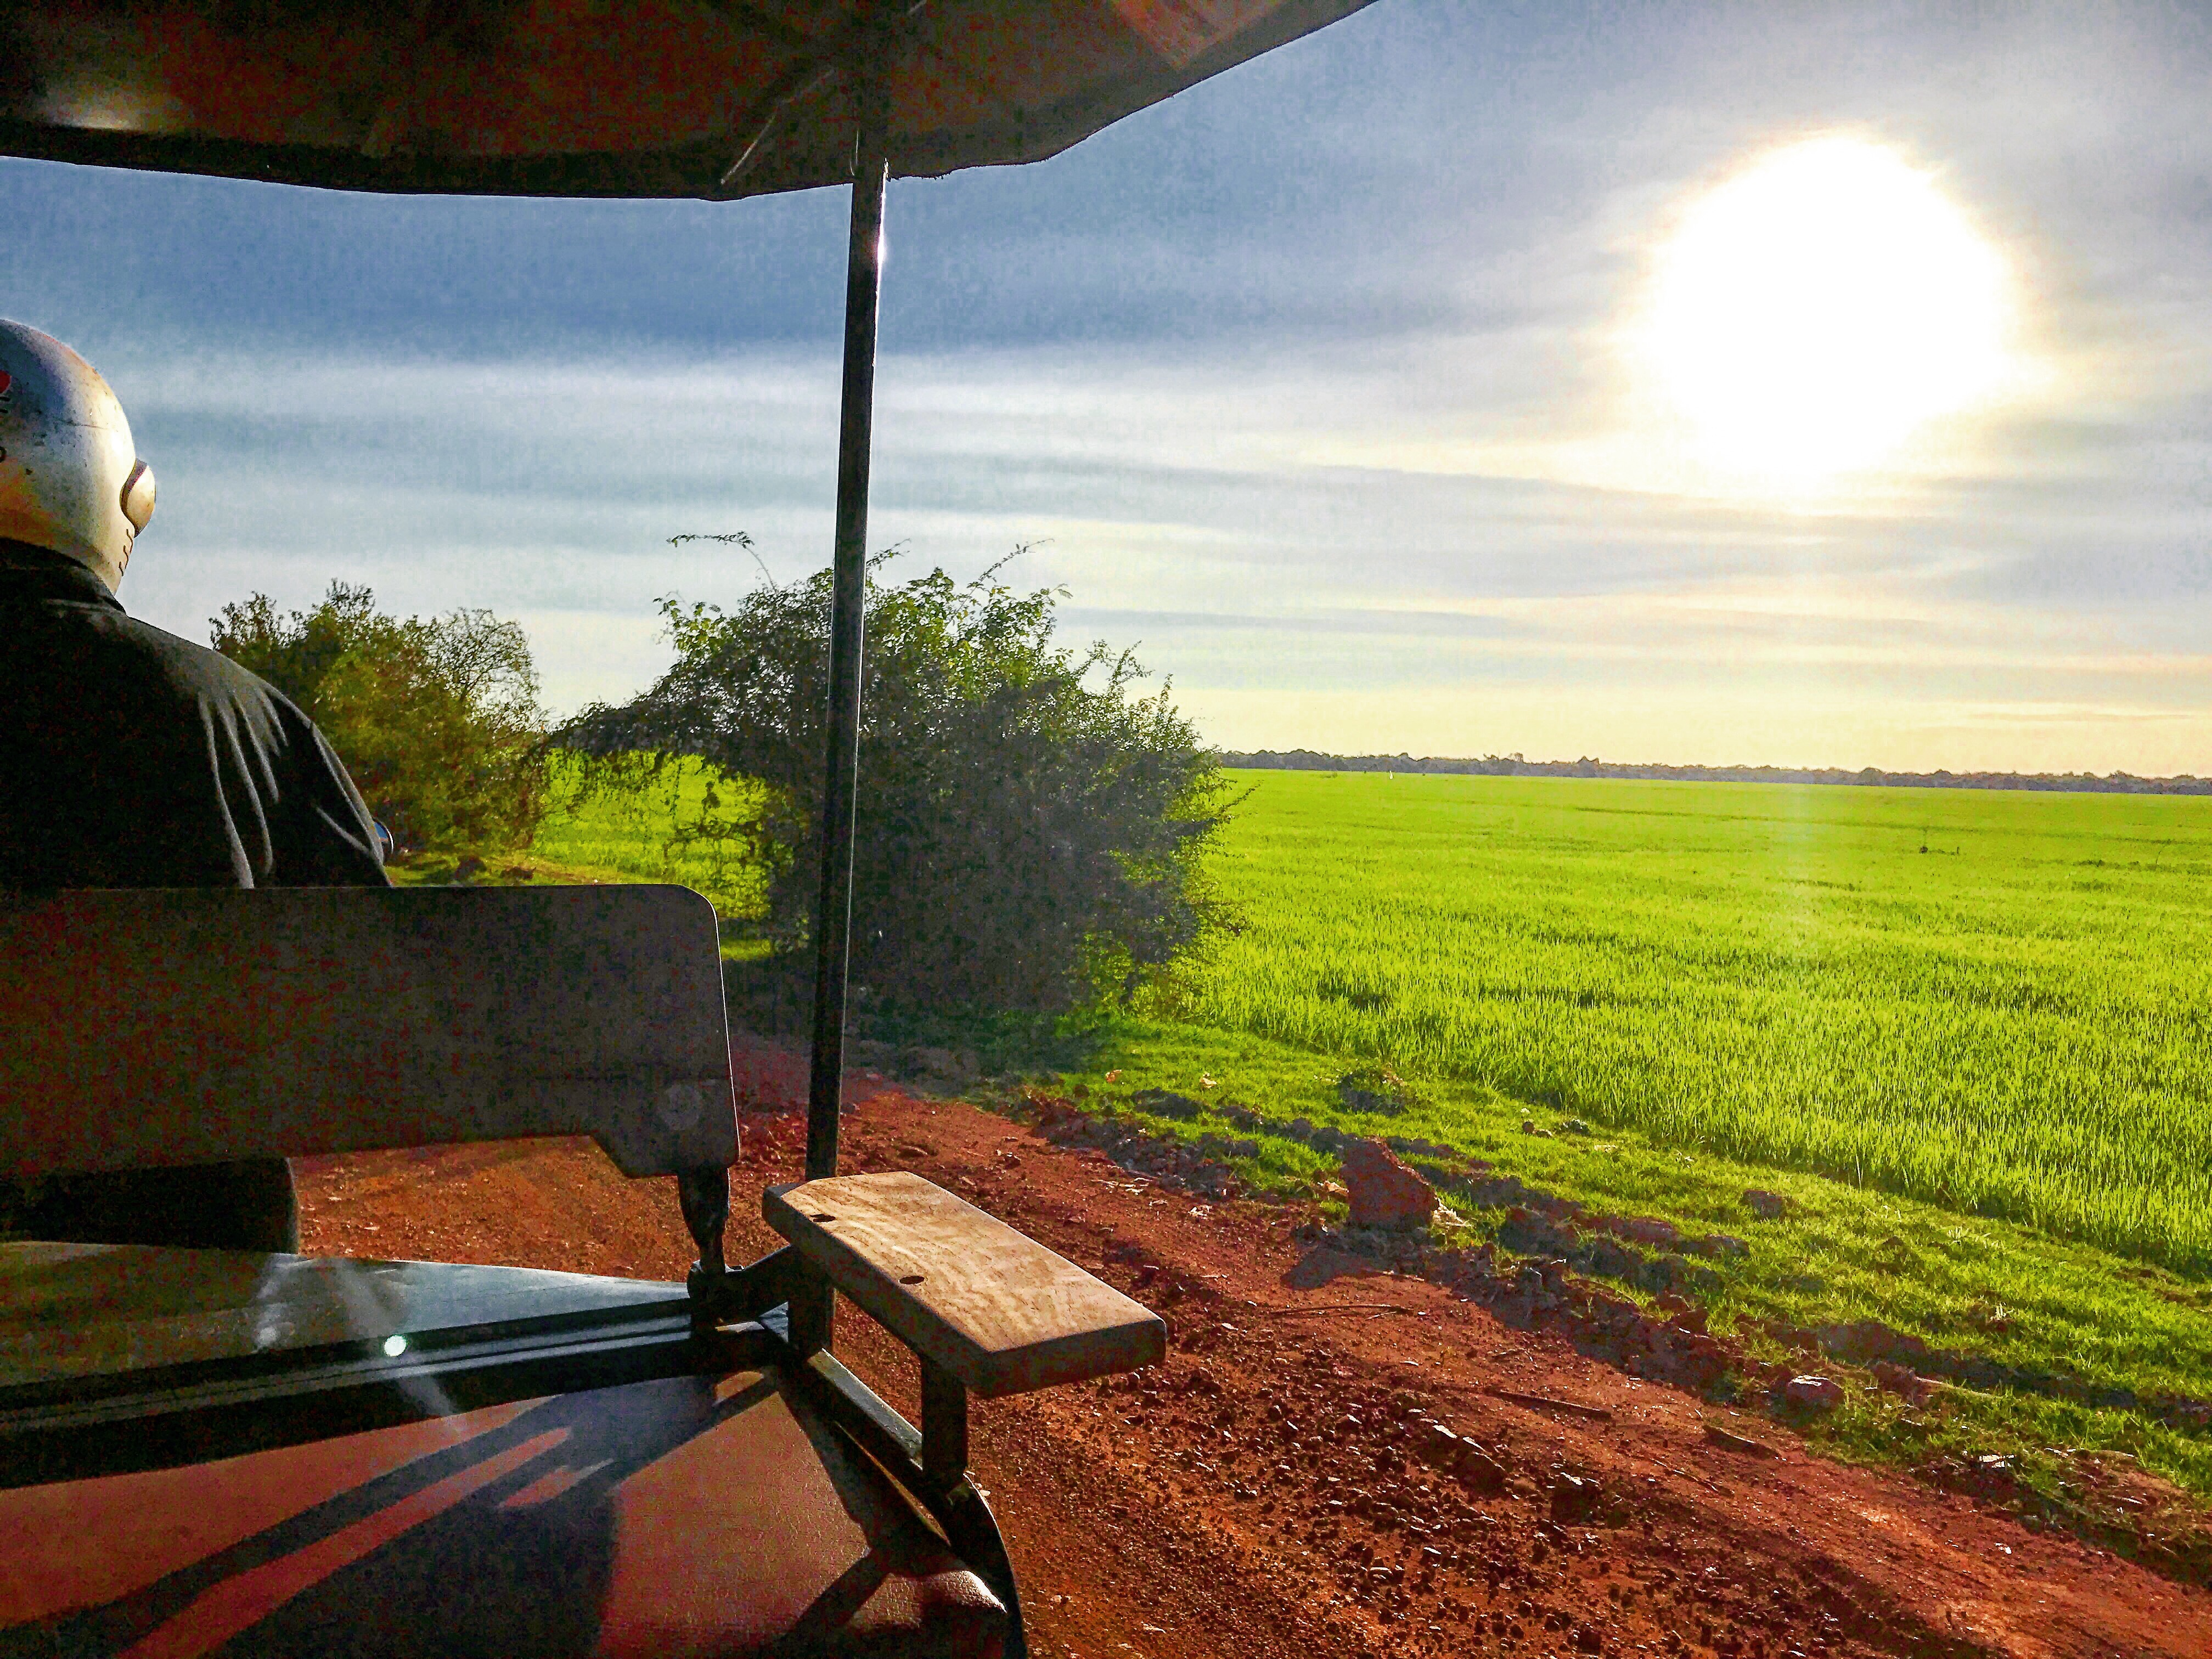 Riding a Tuk Tuk through the Countryside in Siem Reap , Cambodia